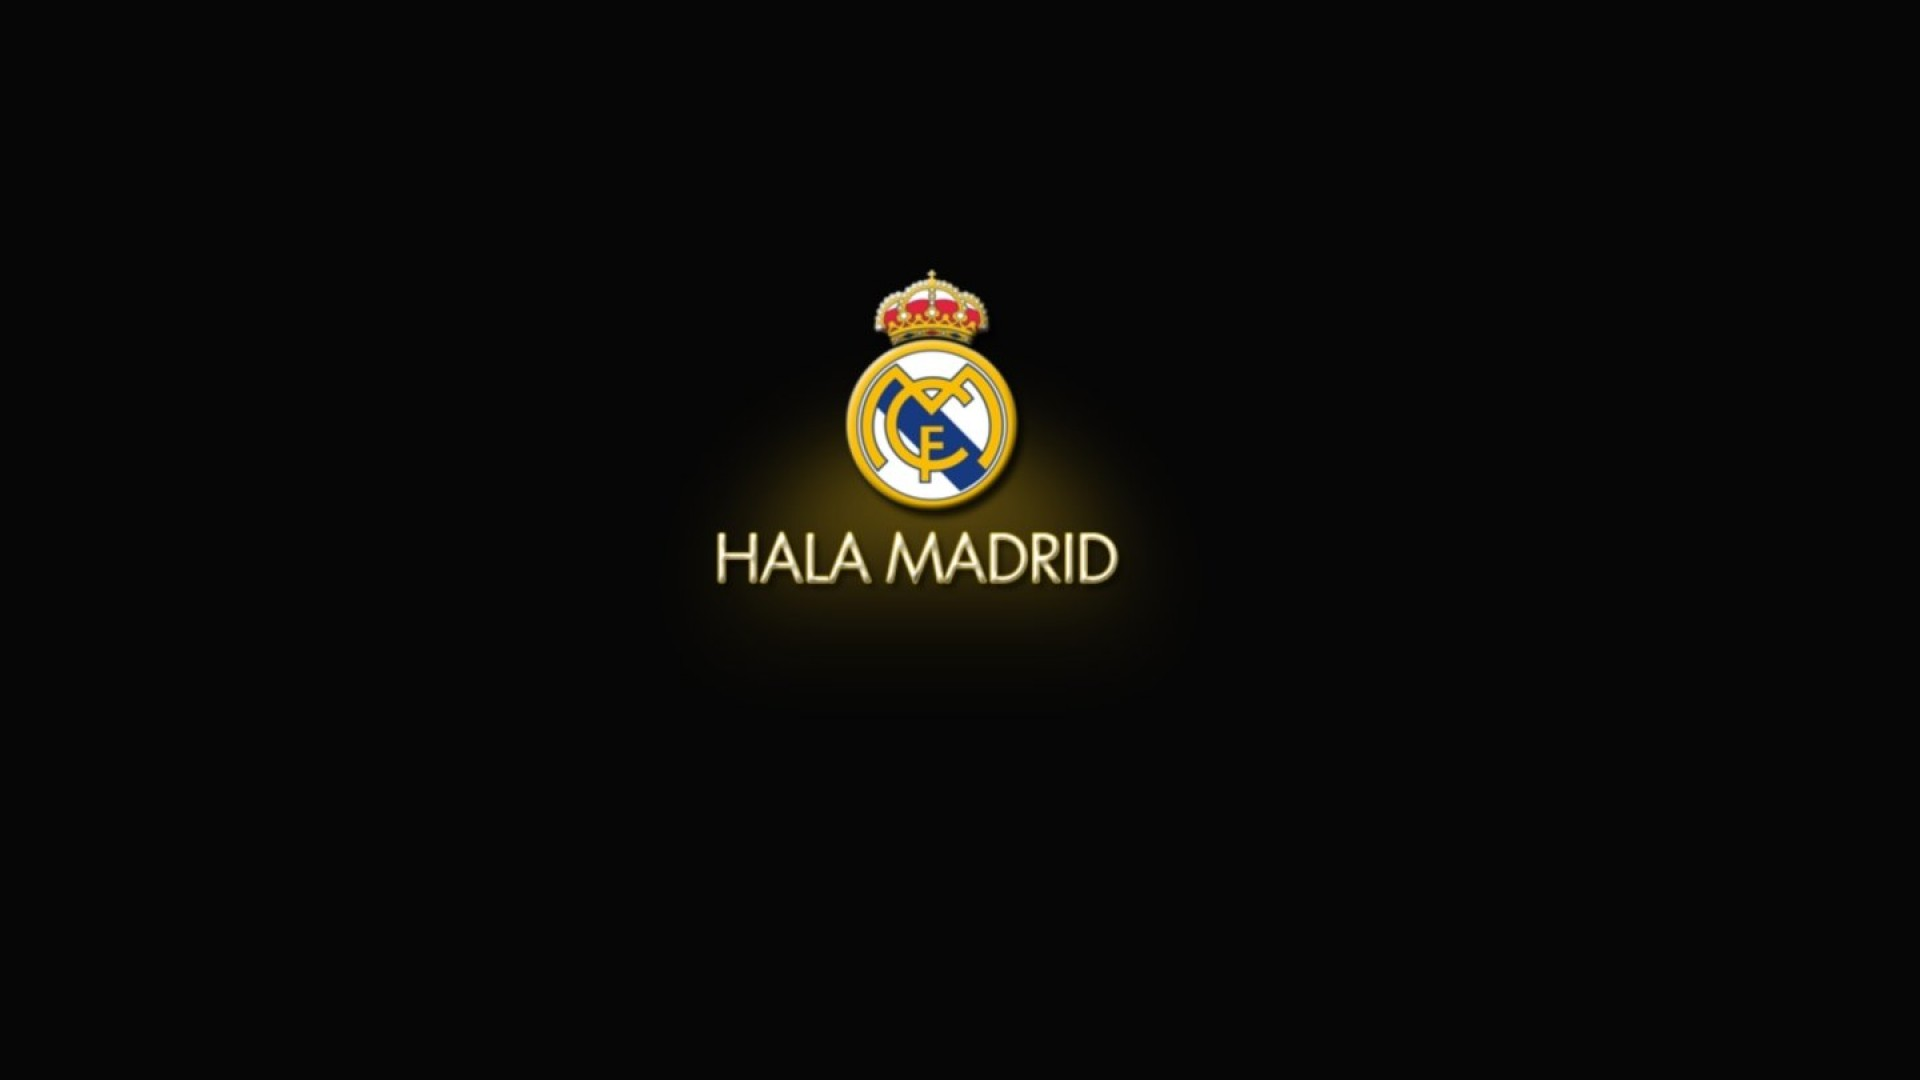 1920x1080 Real Logo Madrid Black Wallpapers